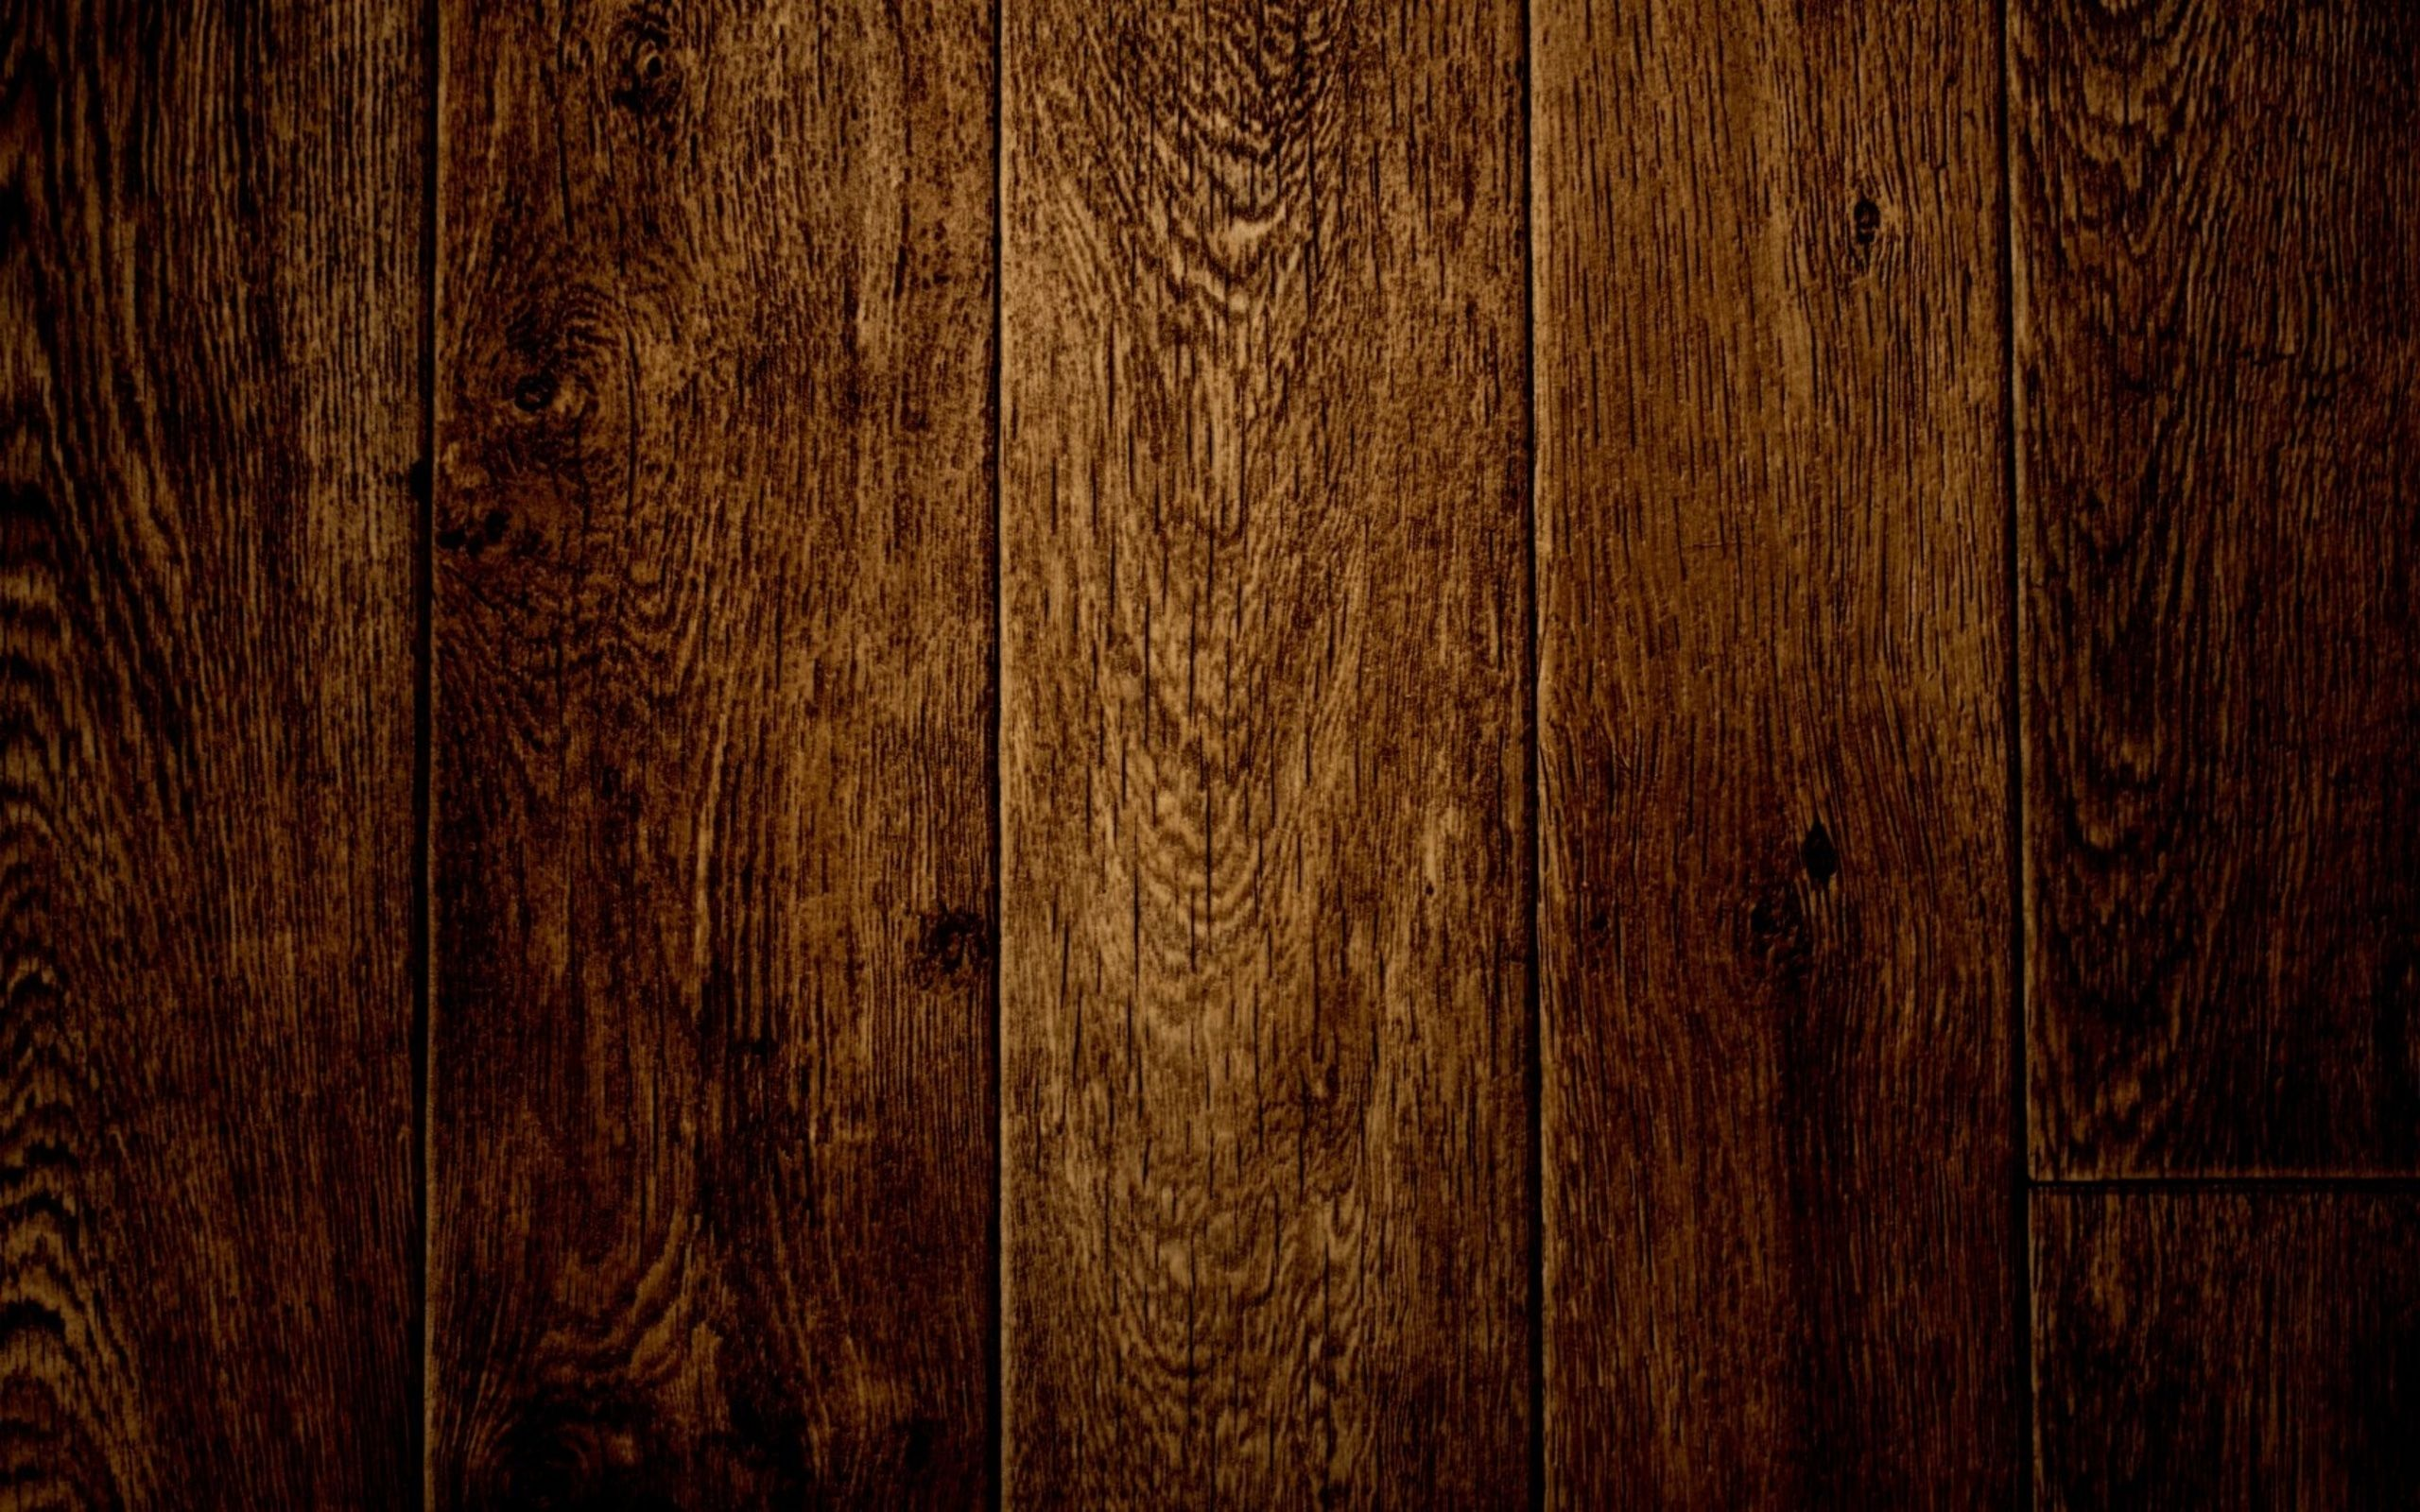 dark wood floor background. wood pattern wallpapers u2013 and backgrounds dark floor background